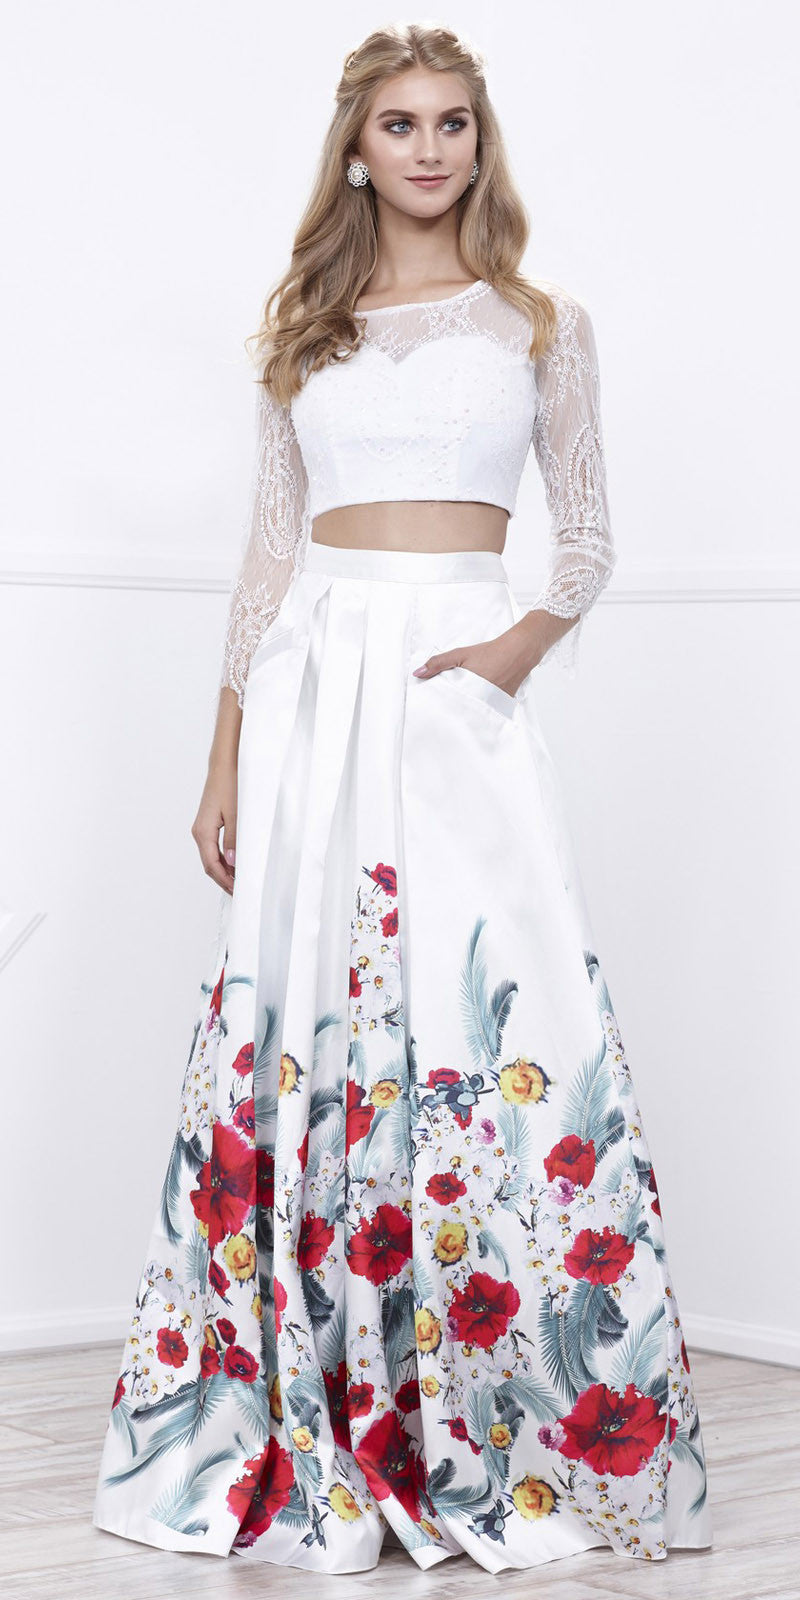 White Long skirt and top photos